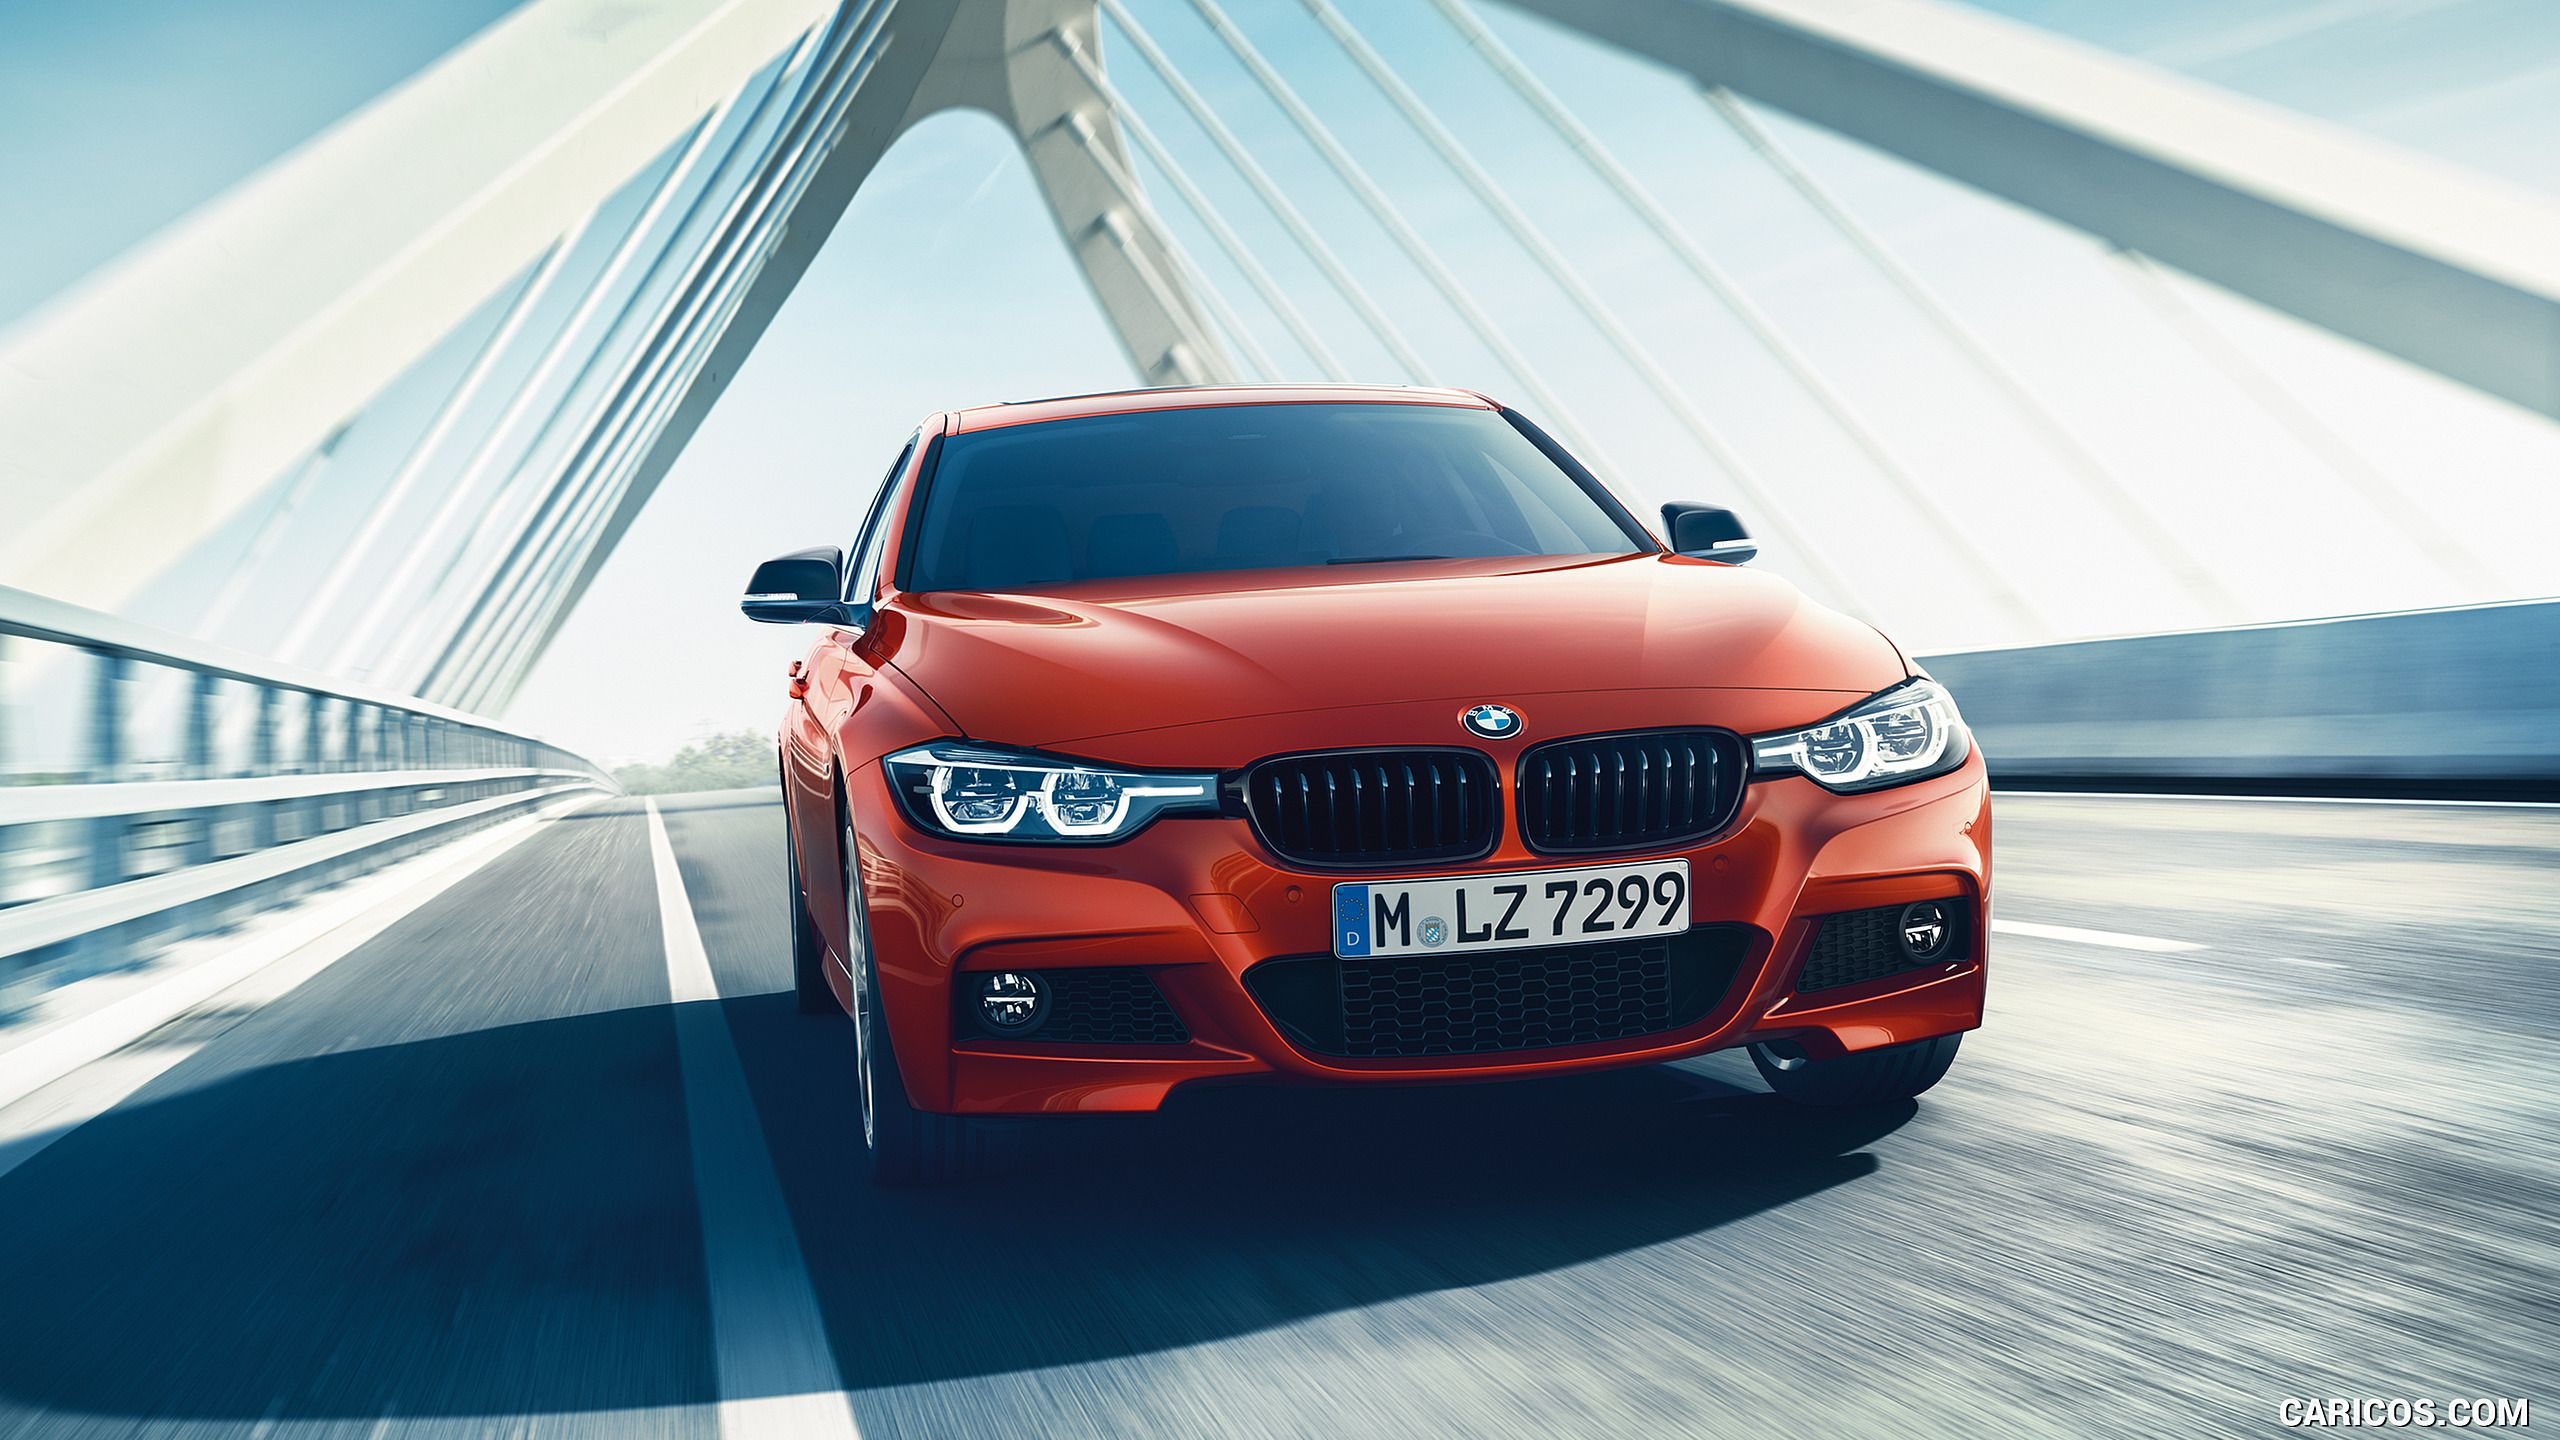 Bmw 3 Series Wallpapers Top Free Bmw 3 Series Backgrounds Wallpaperaccess